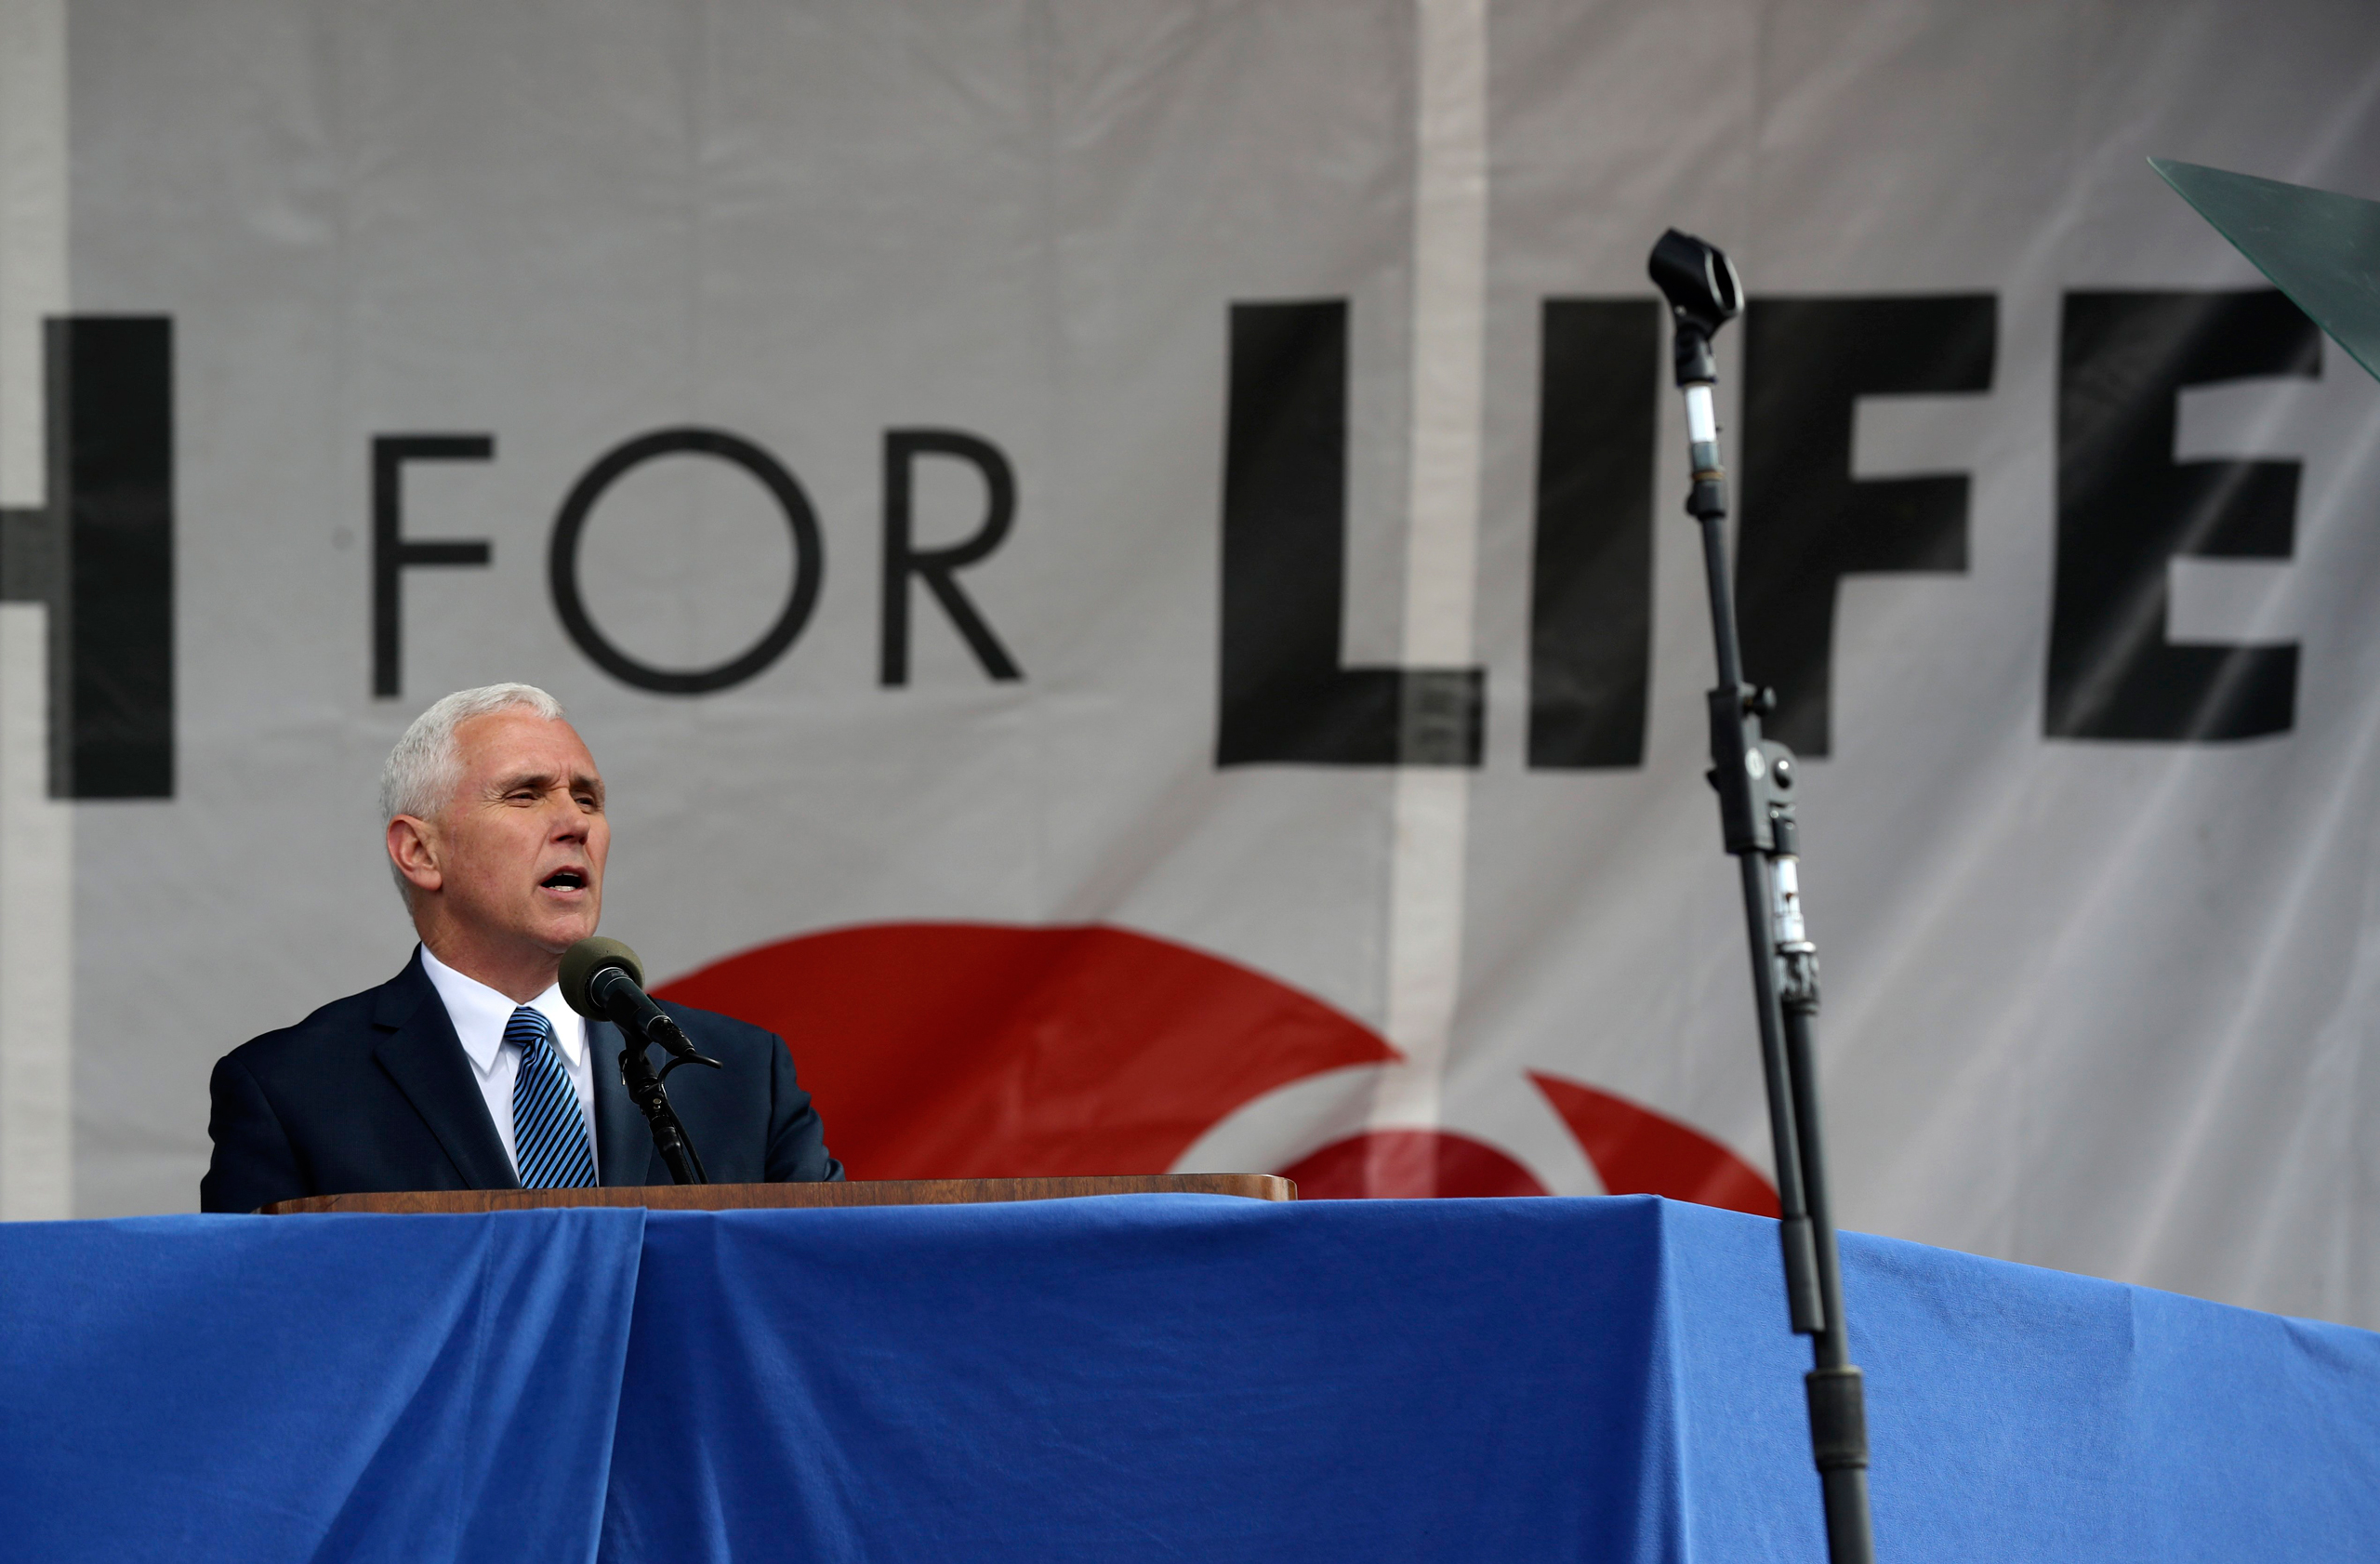 Vice President Mike Pence speaks at the March for Life on the National Mall in Washington on Jan. 27, 2017.